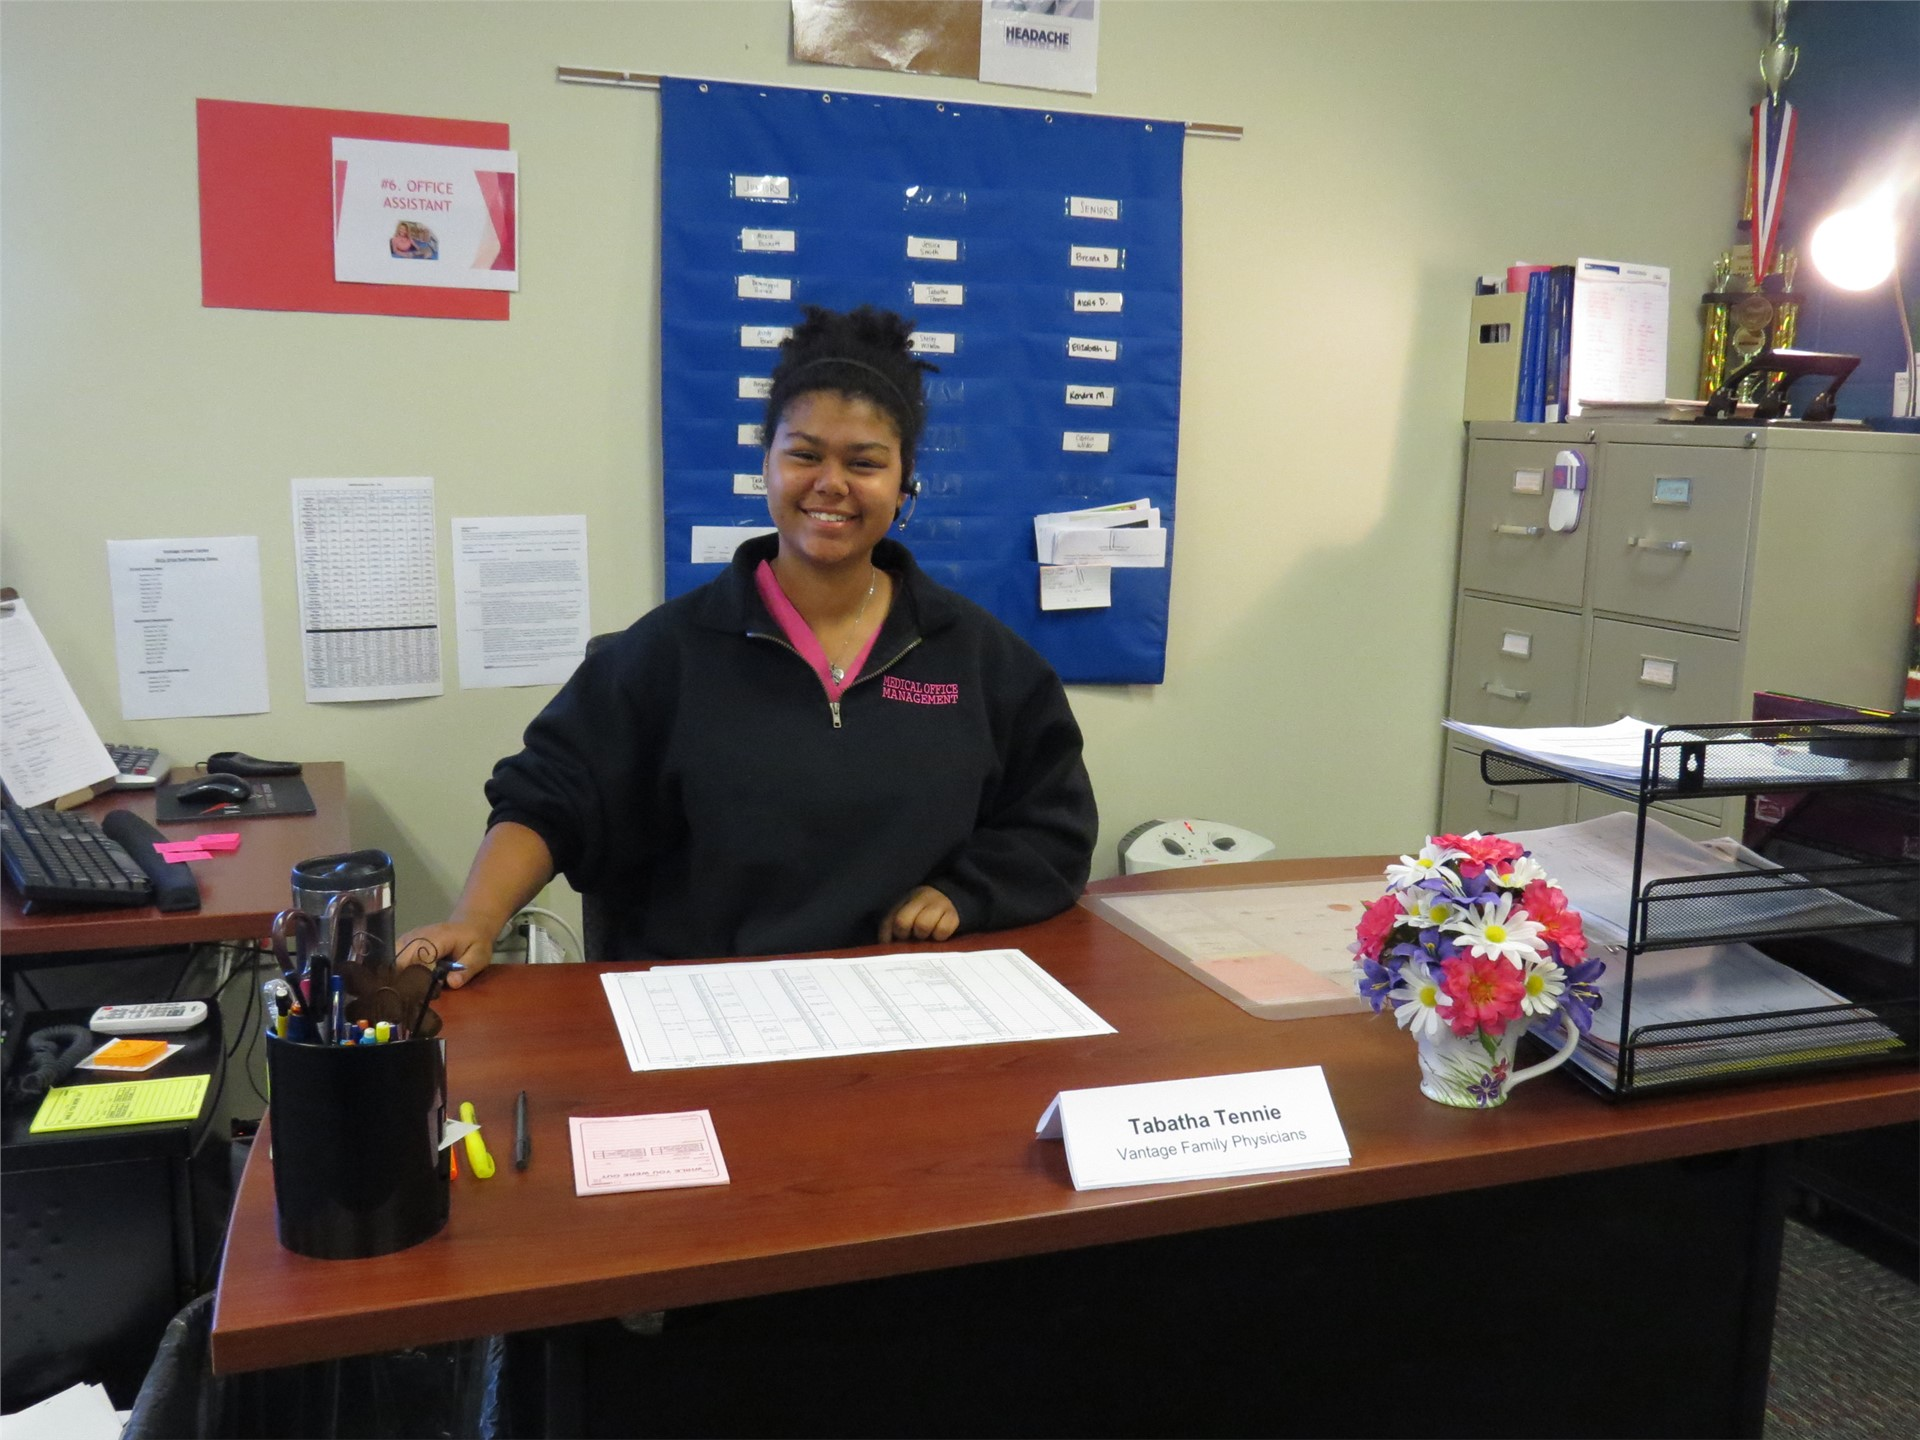 Female Medical Office Management student smiling, sitting at desk